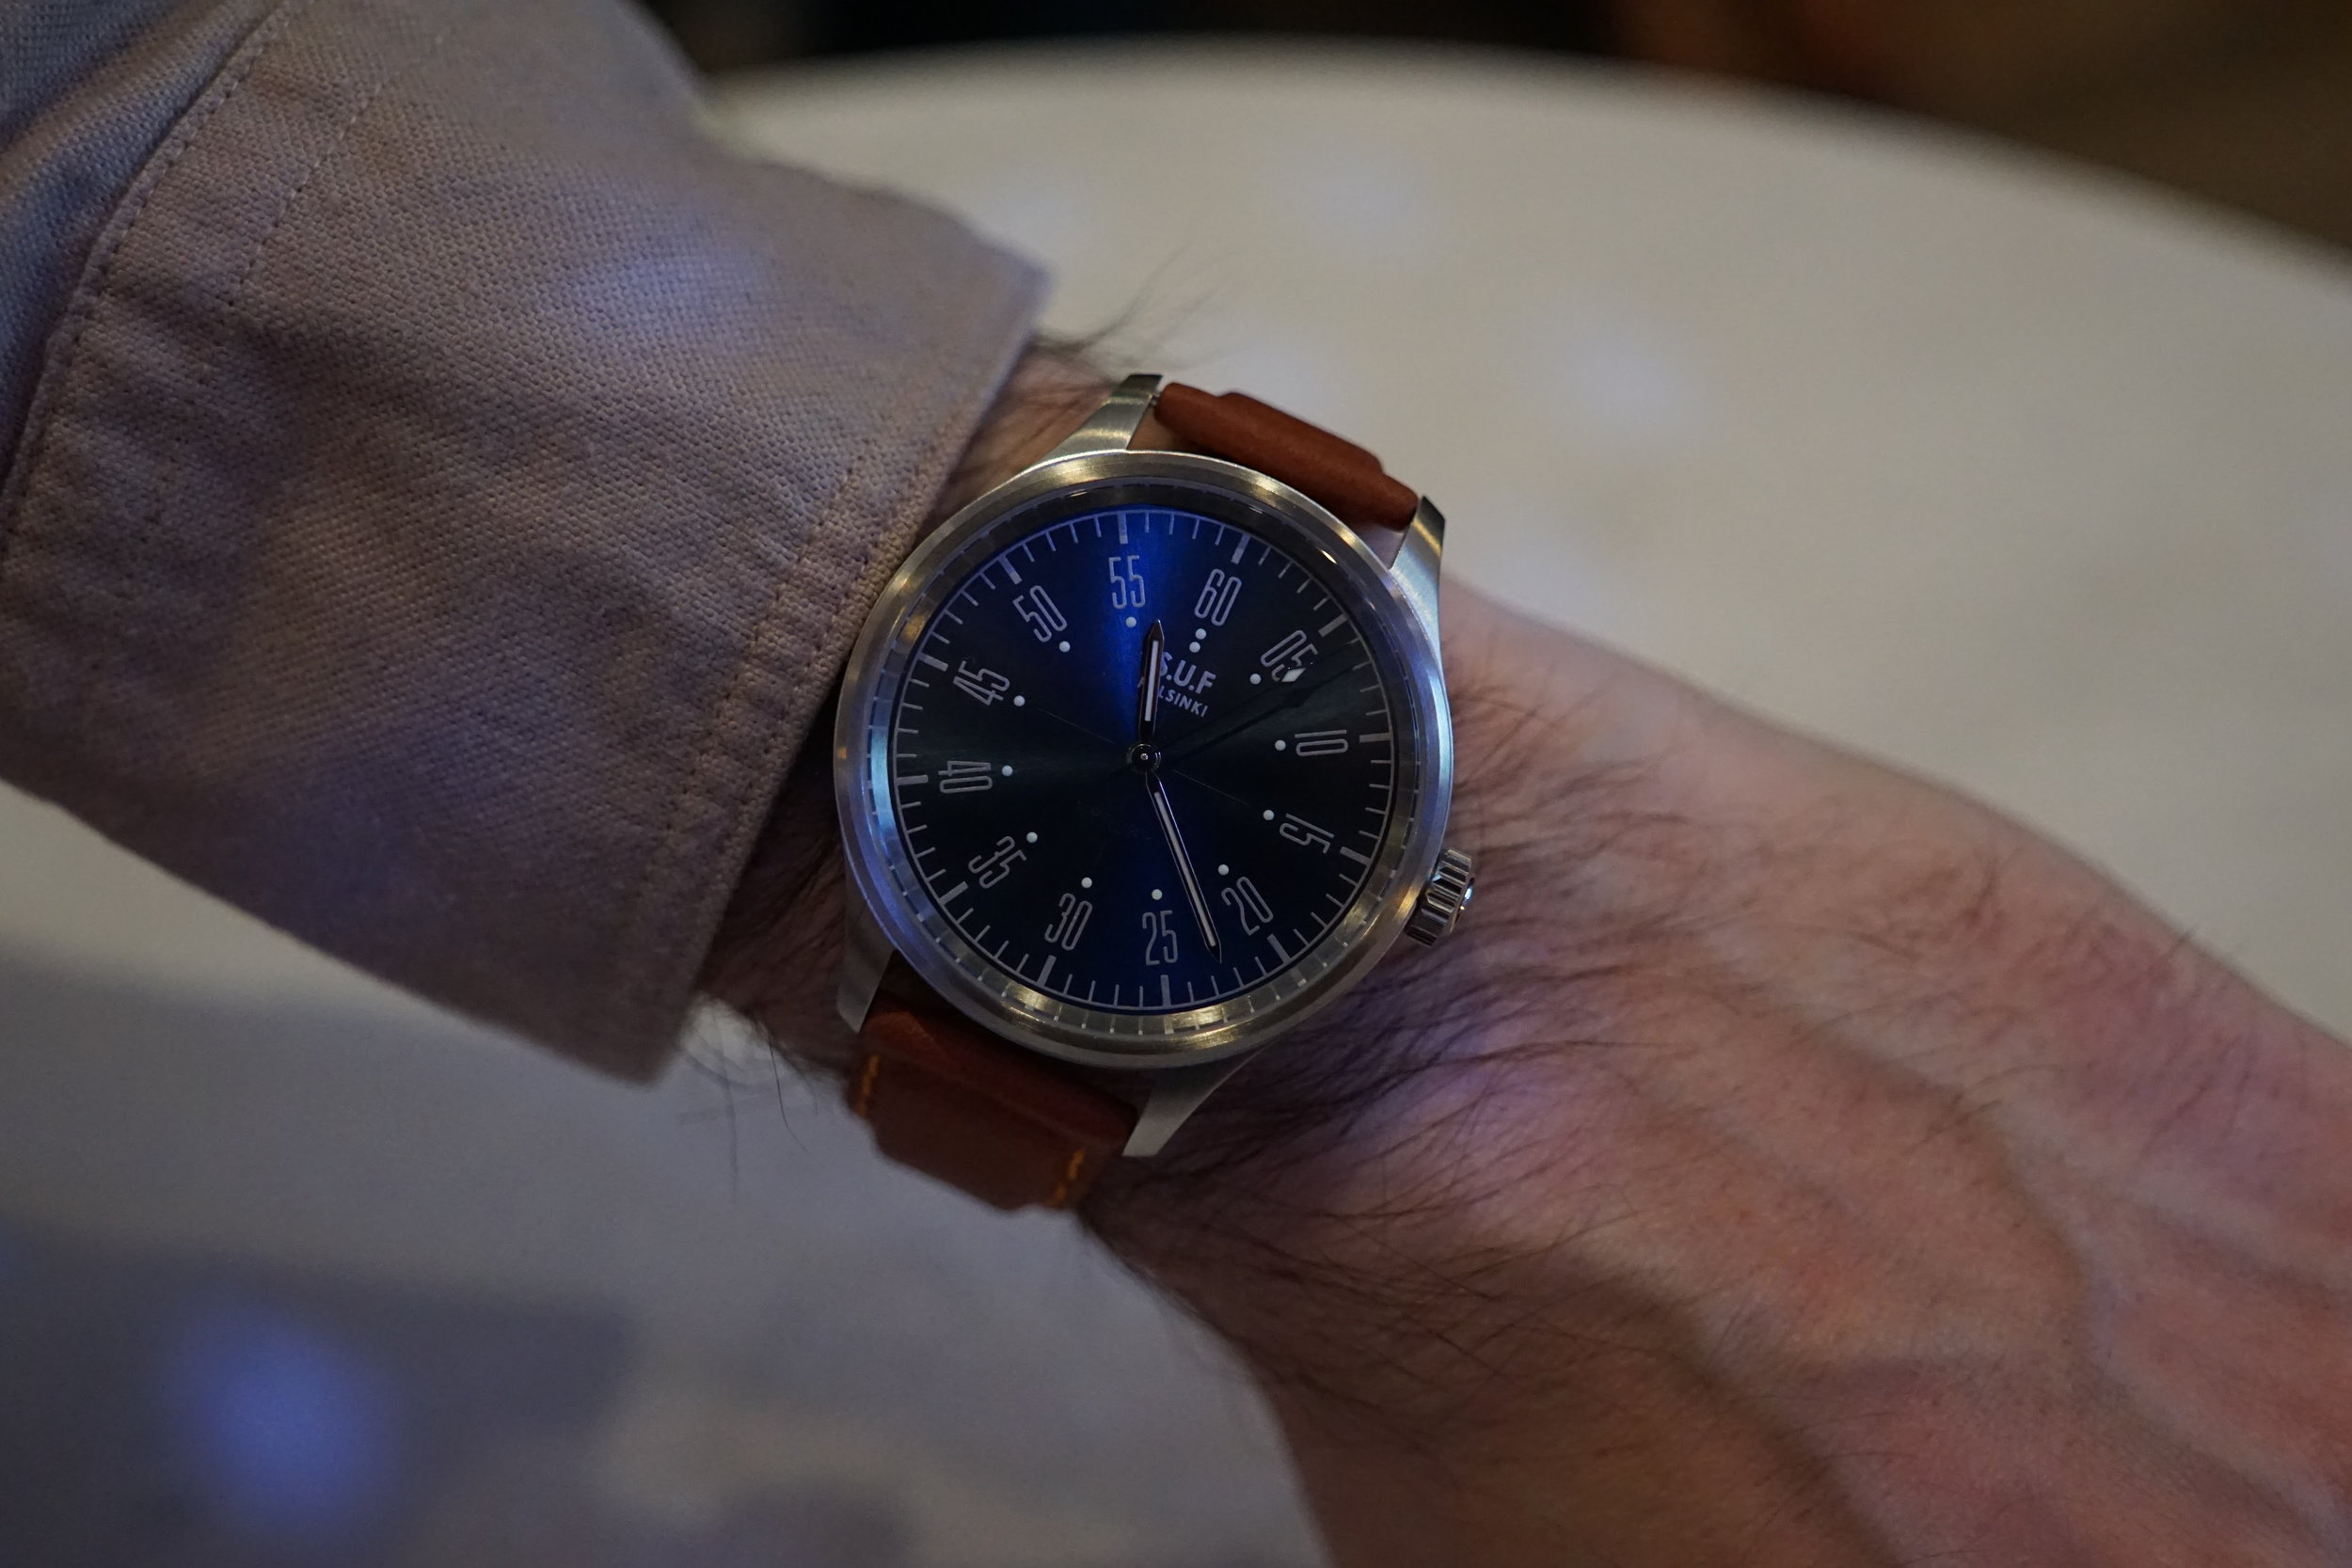 The just released Kelloharrastajat Myrsky on the wrist of a happy new owner.